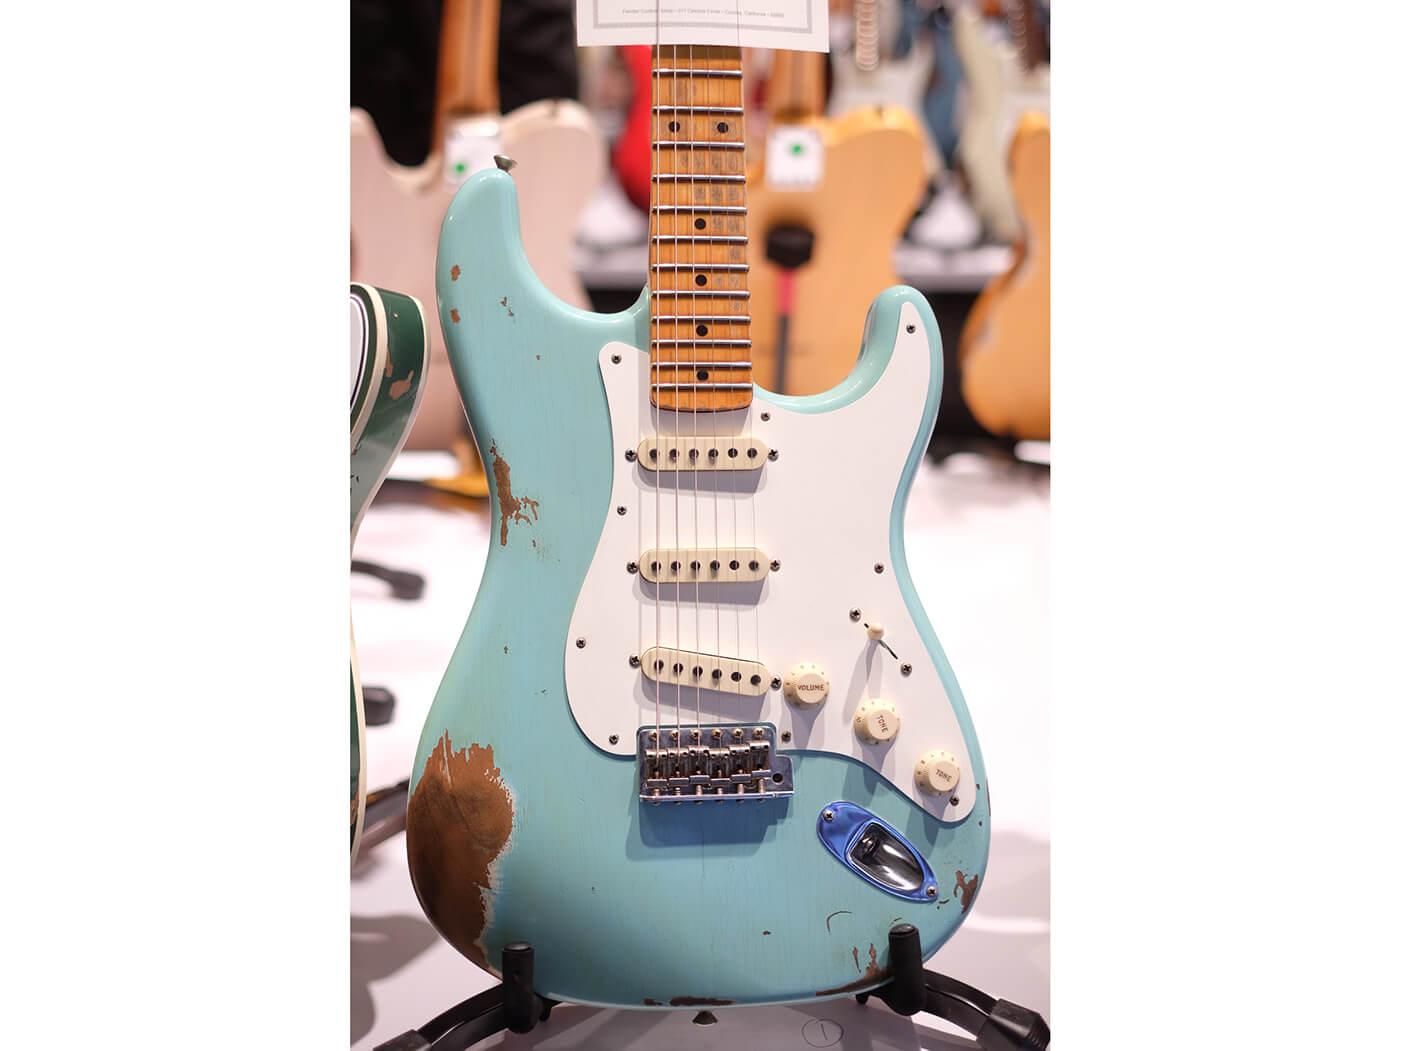 1959 Stratocaster Heavy Relic, Aged Daphne Blue